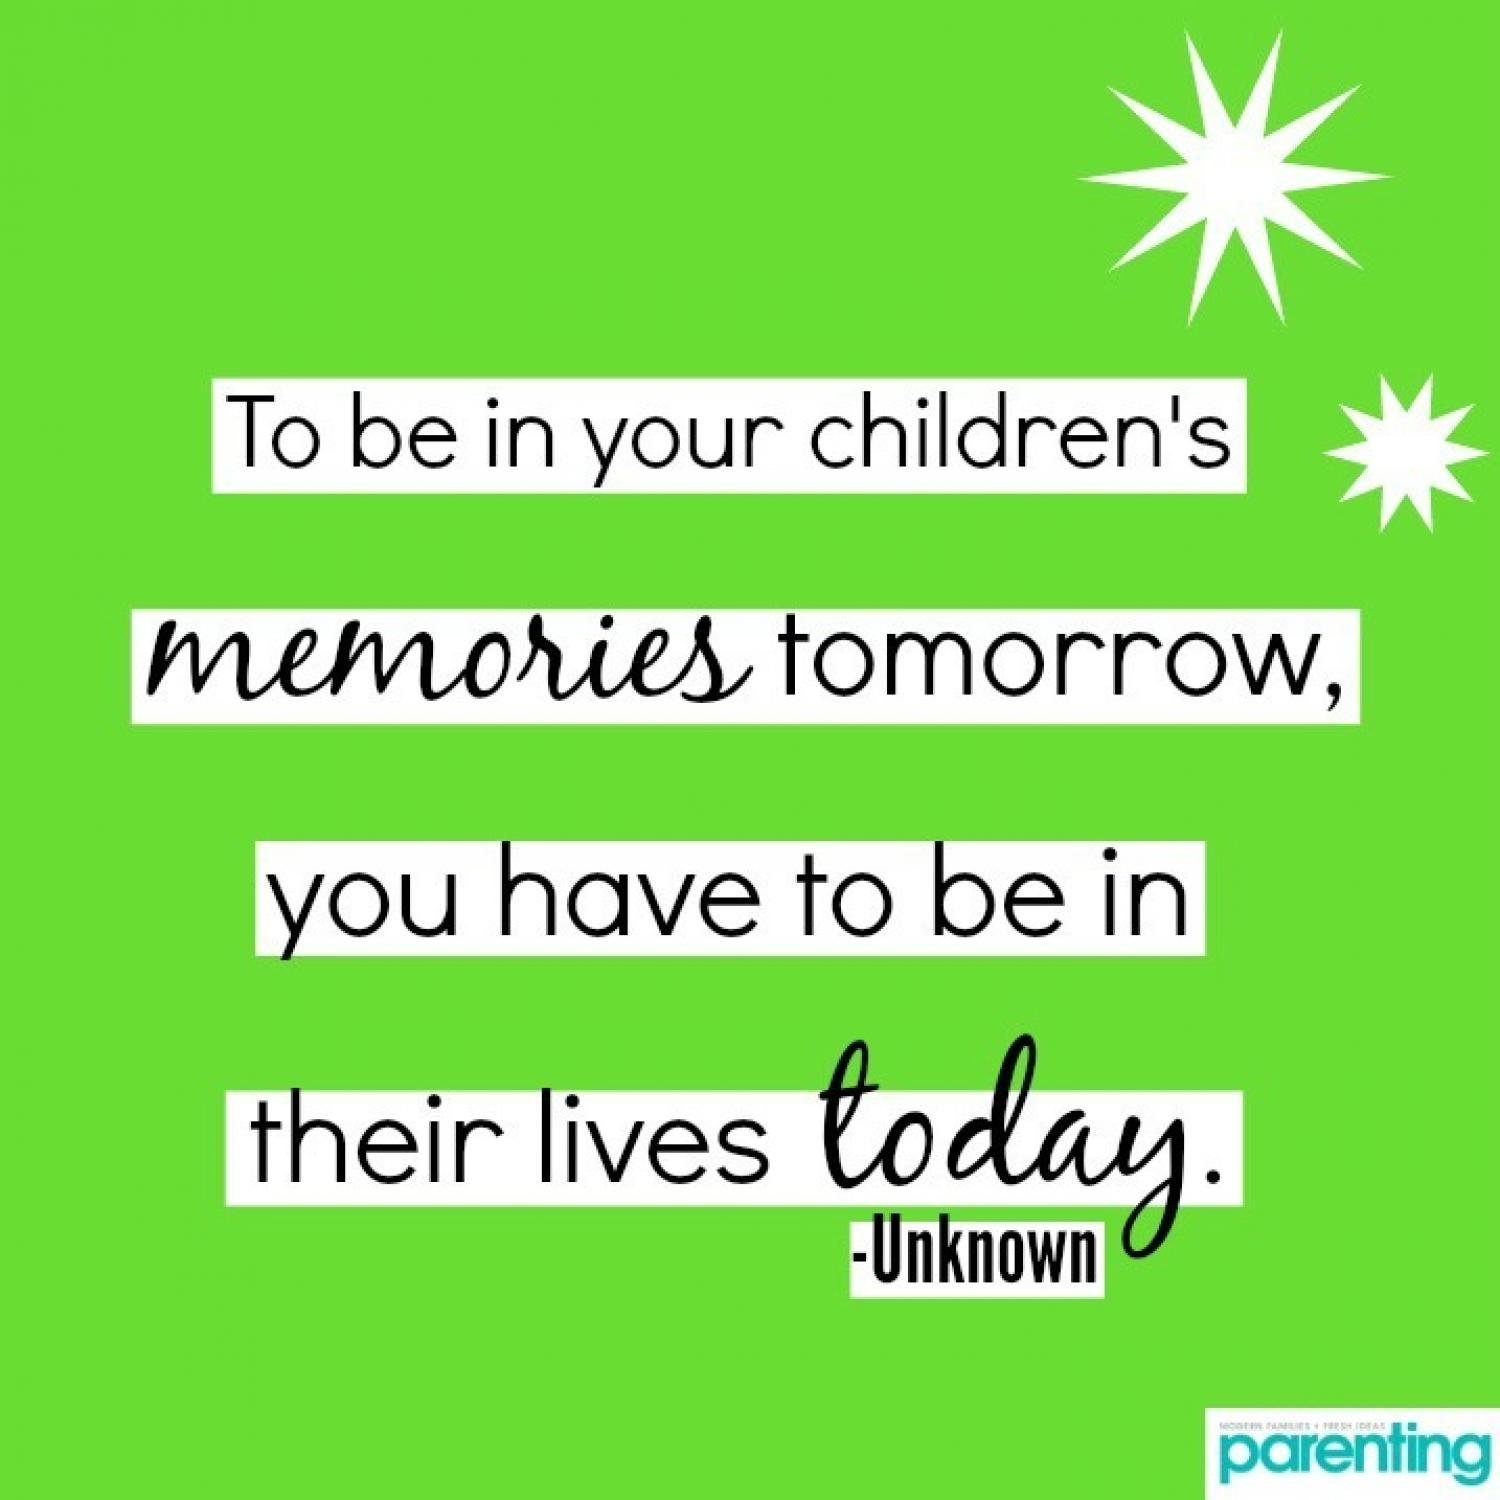 17 Amazing Parenting Quotes That Will Make You a Better Parent  Parenting